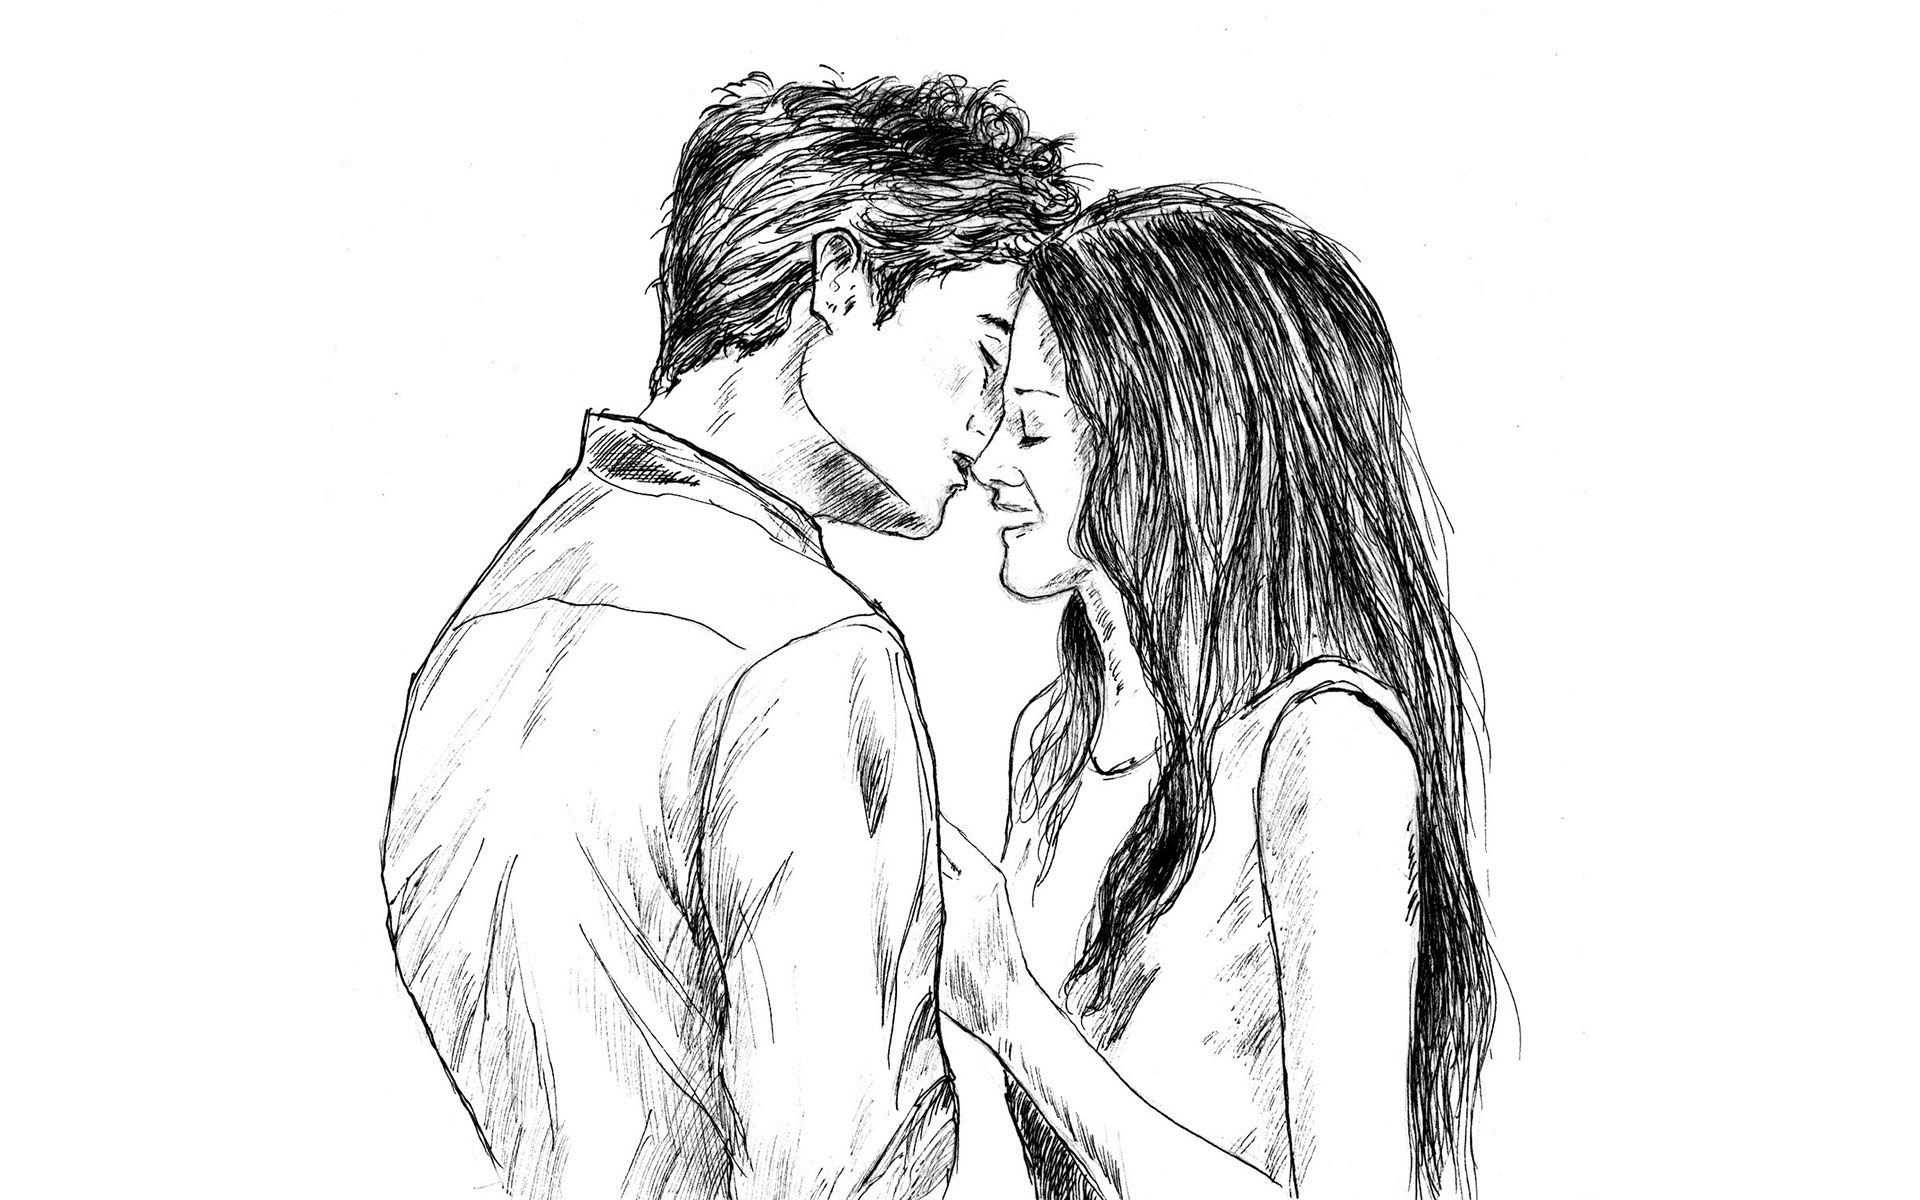 Cute love drawings pencil art hd romantic sketch wallpaper